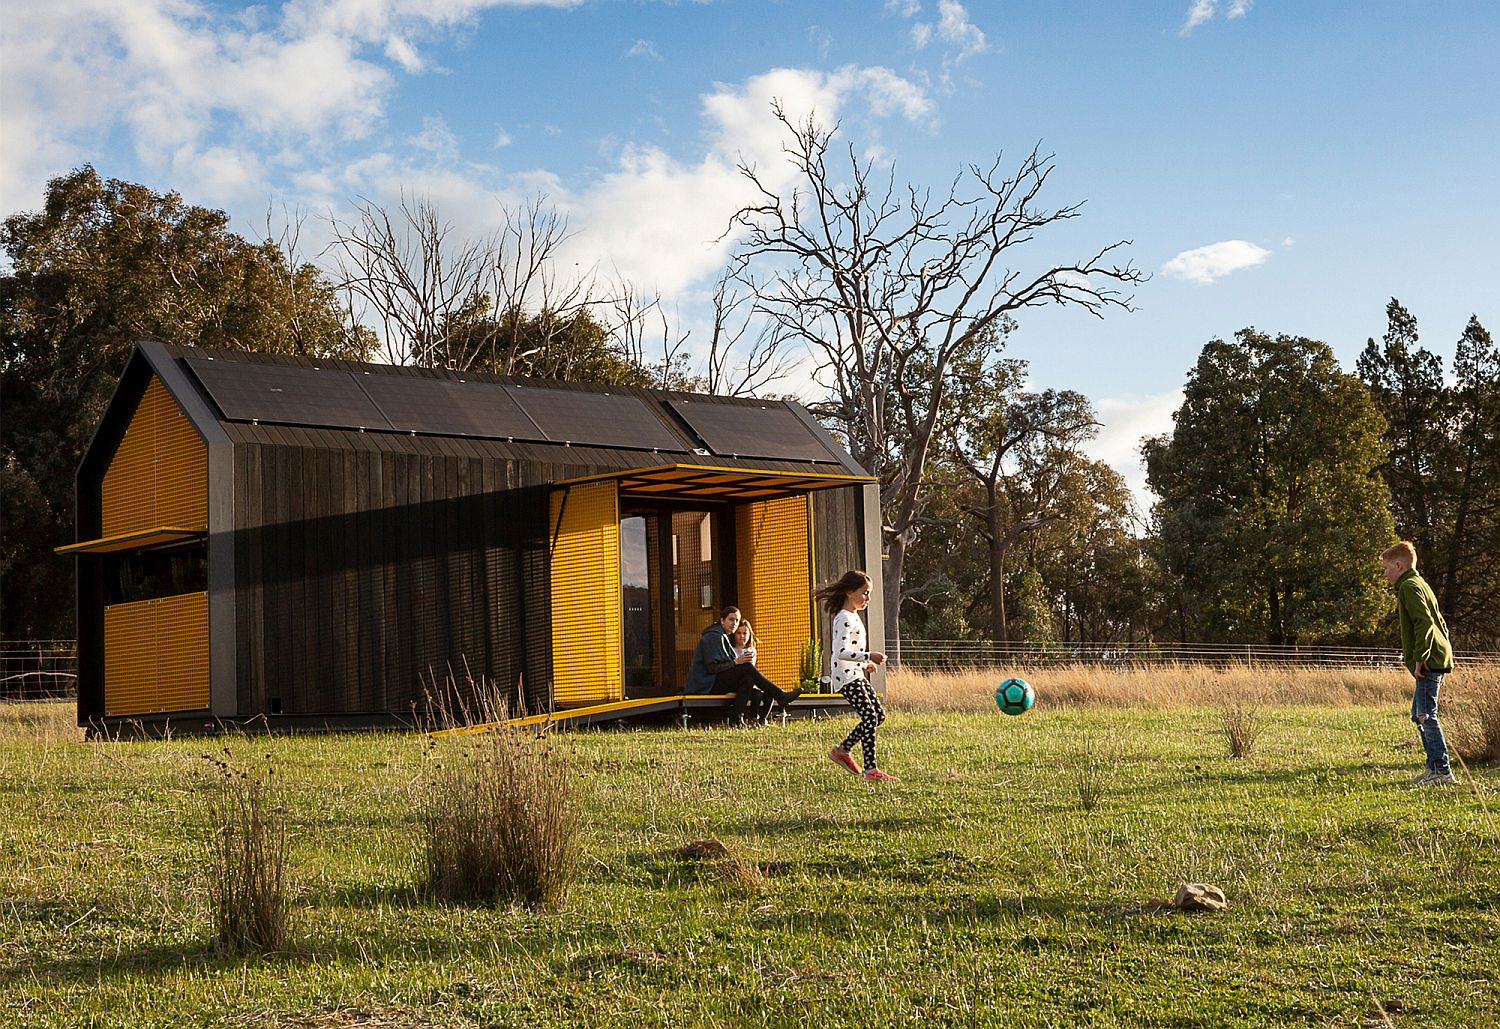 TIny home with gable roof and yellow shades that can be controlled with a smart device